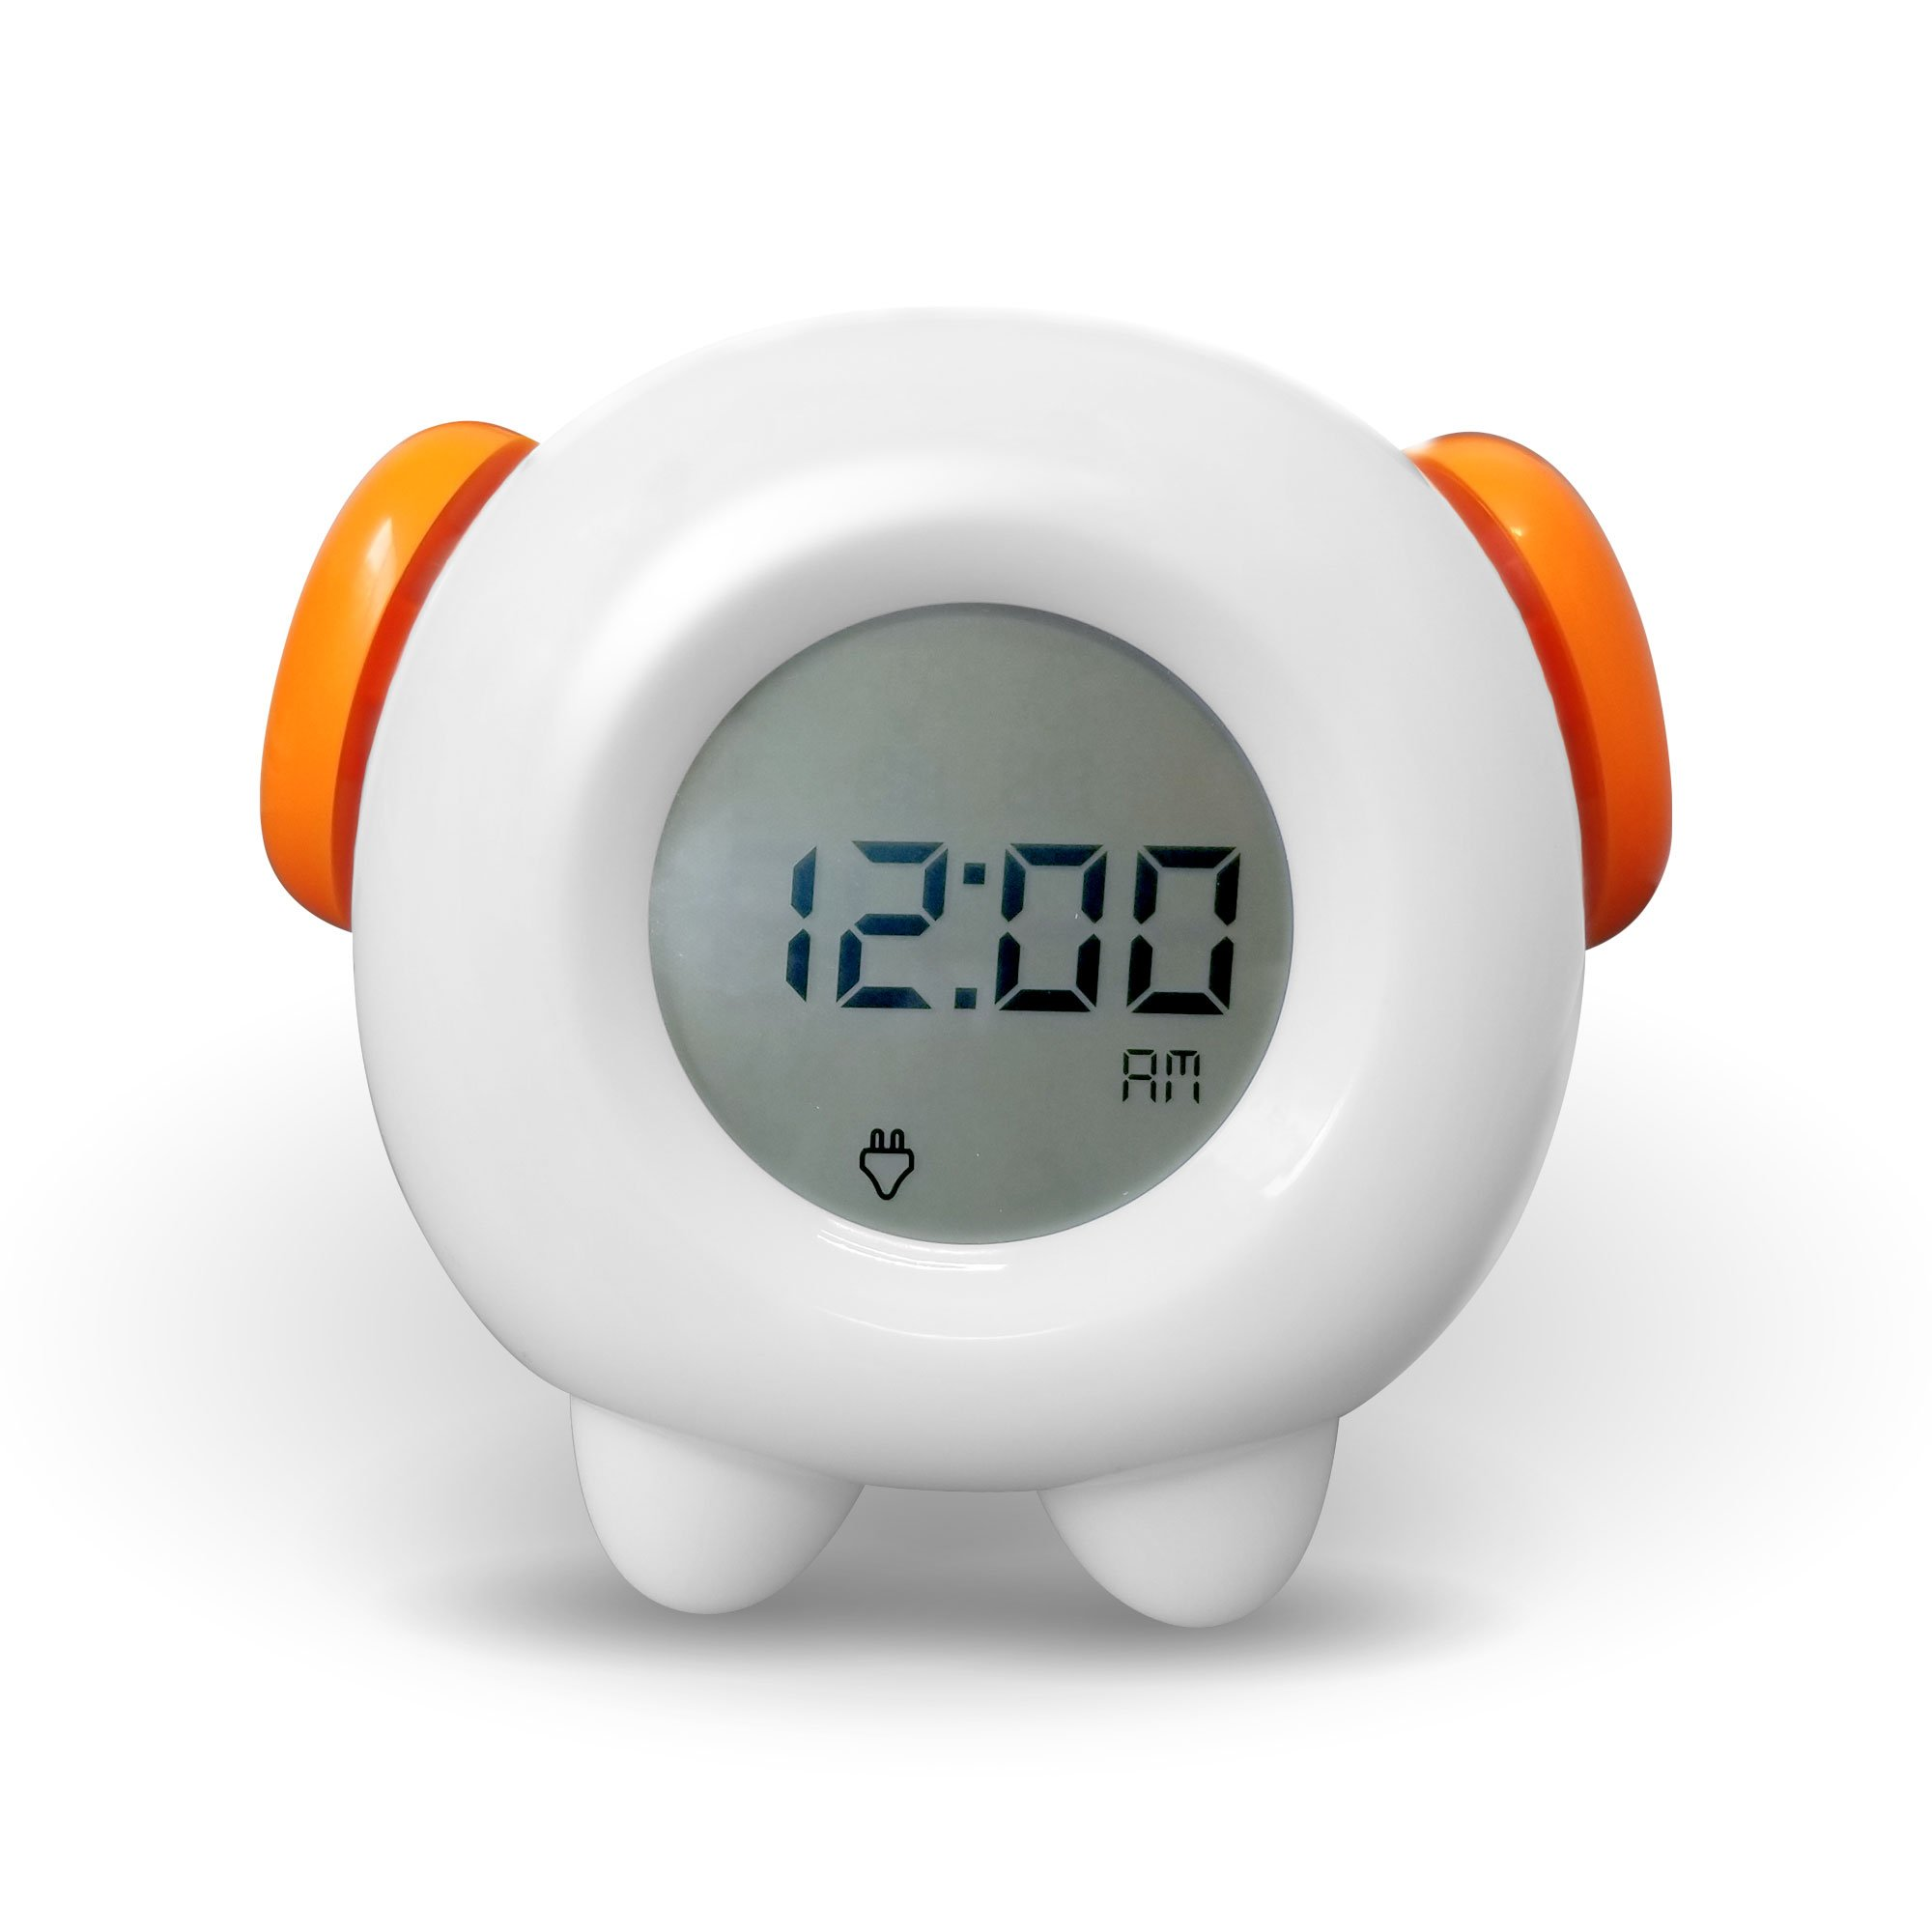 Toddler Stay-In-Bed Kids Light Alarm Clock. Teaches Child When Fine to Wake Up - Plus Night-light. Battery or usb NEW & REVISED 2018 EDITION by Learn & Climb